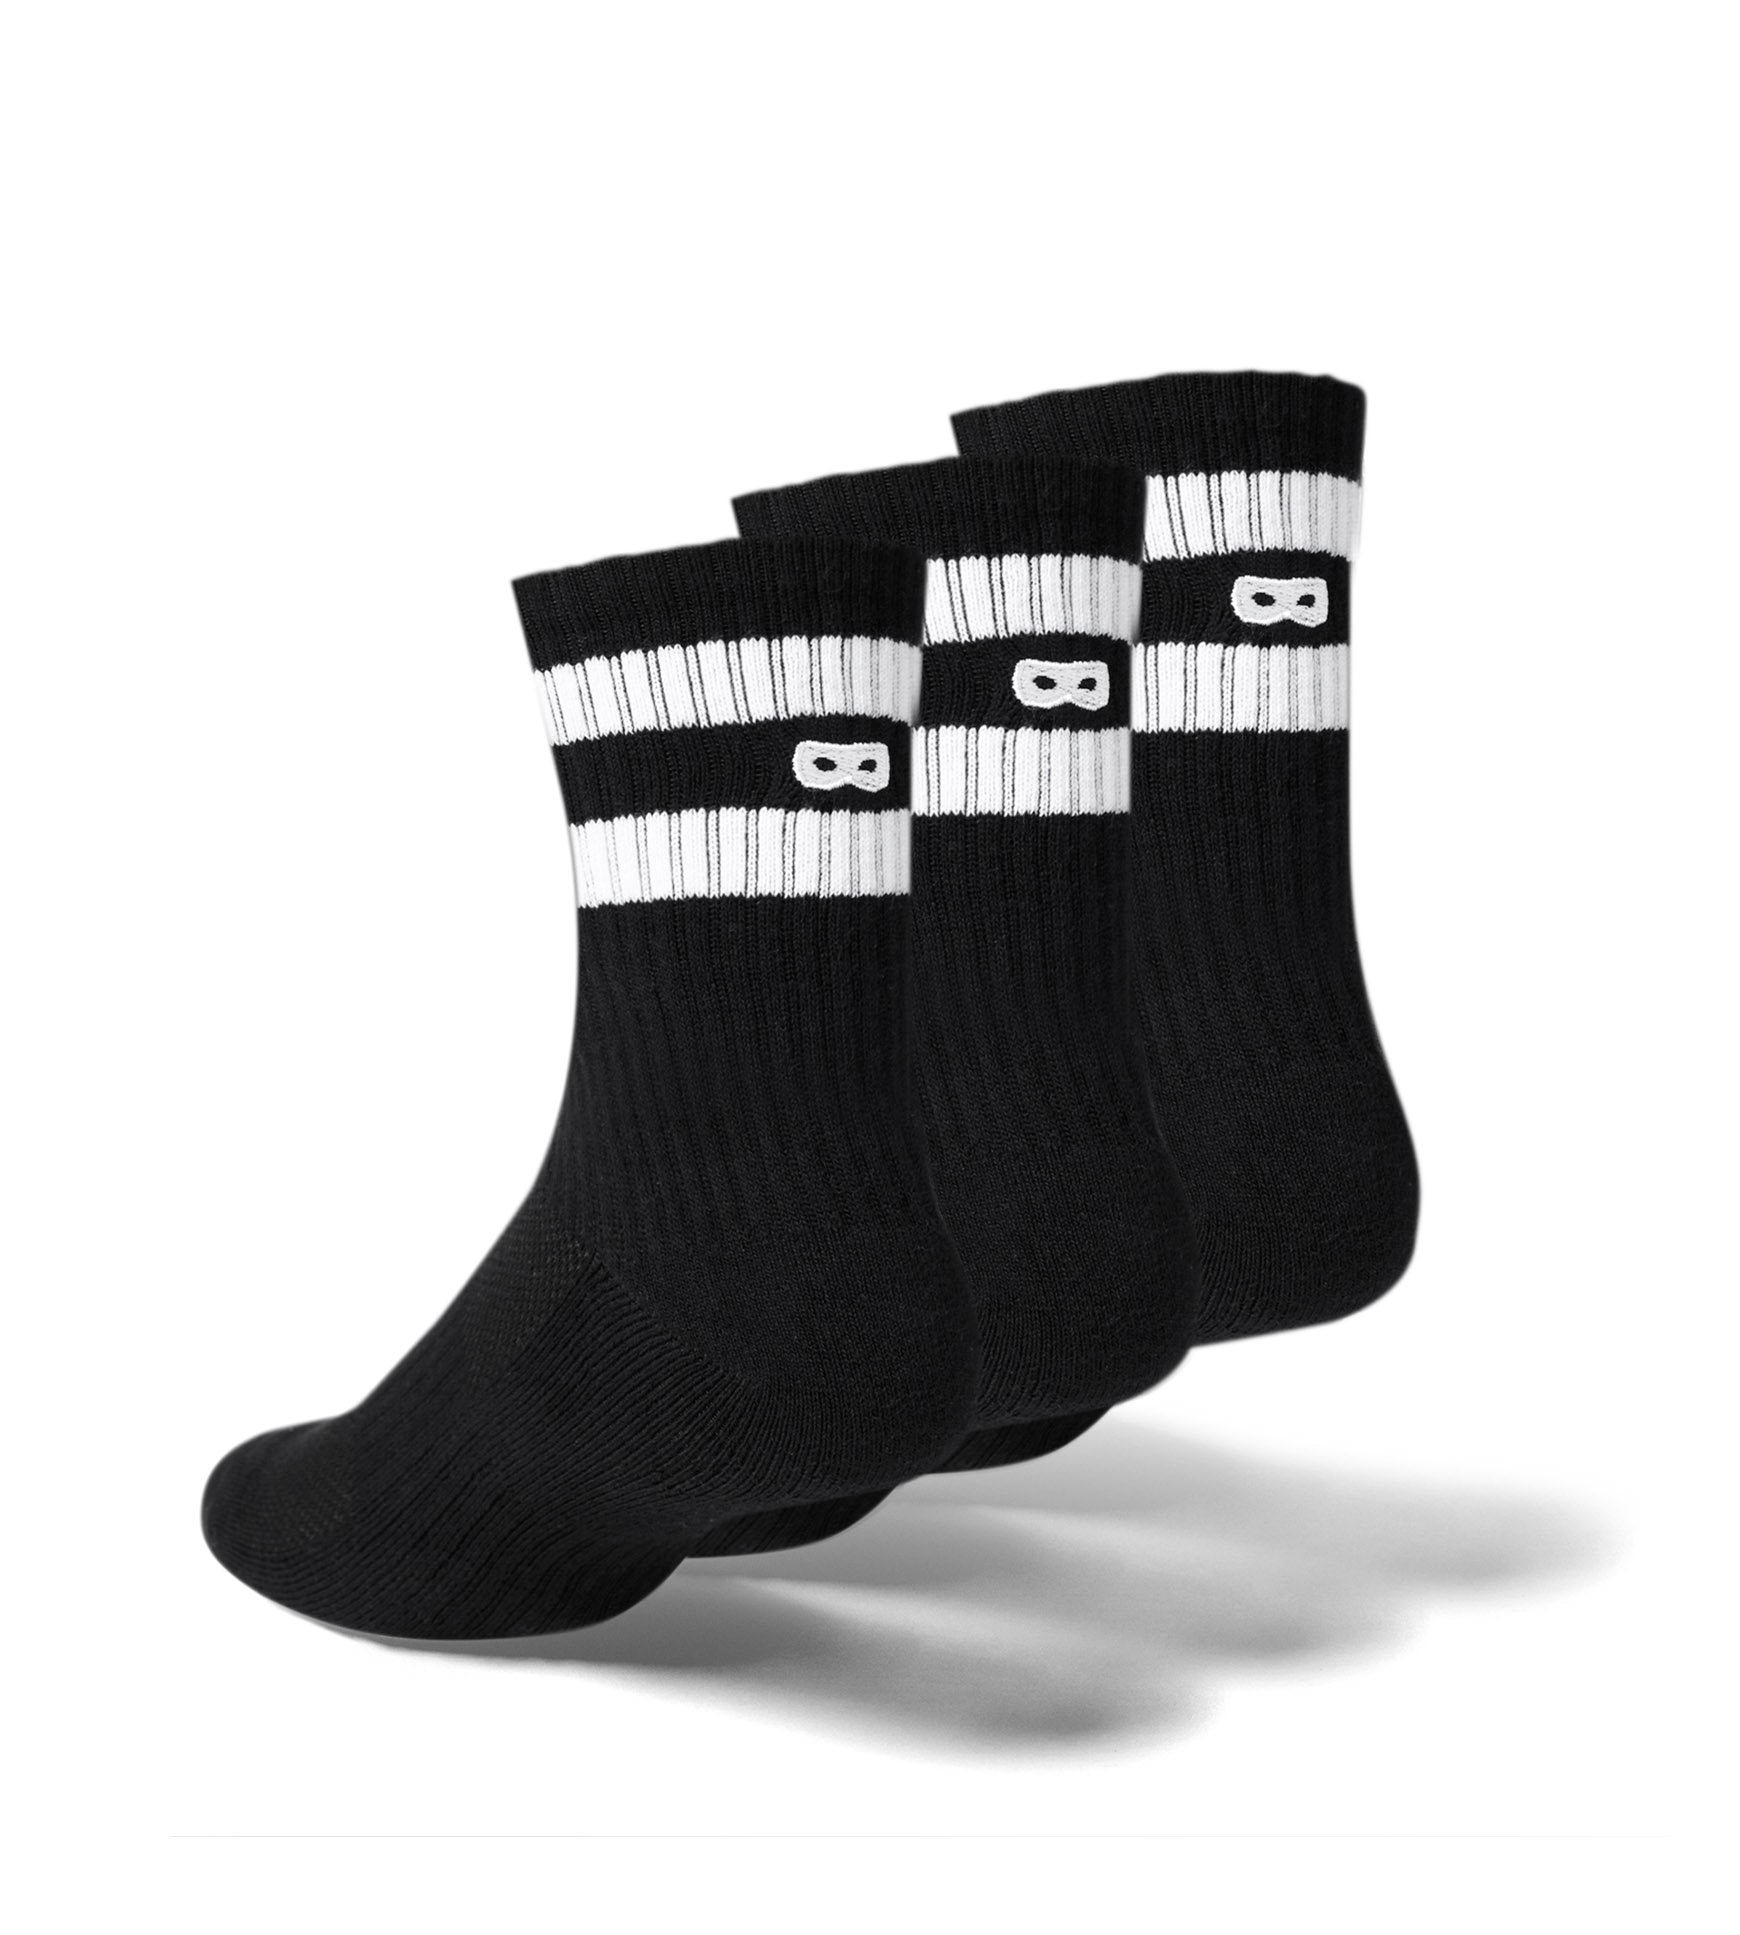 Blackout Women's Cushion Ankle Socks 3 Pack